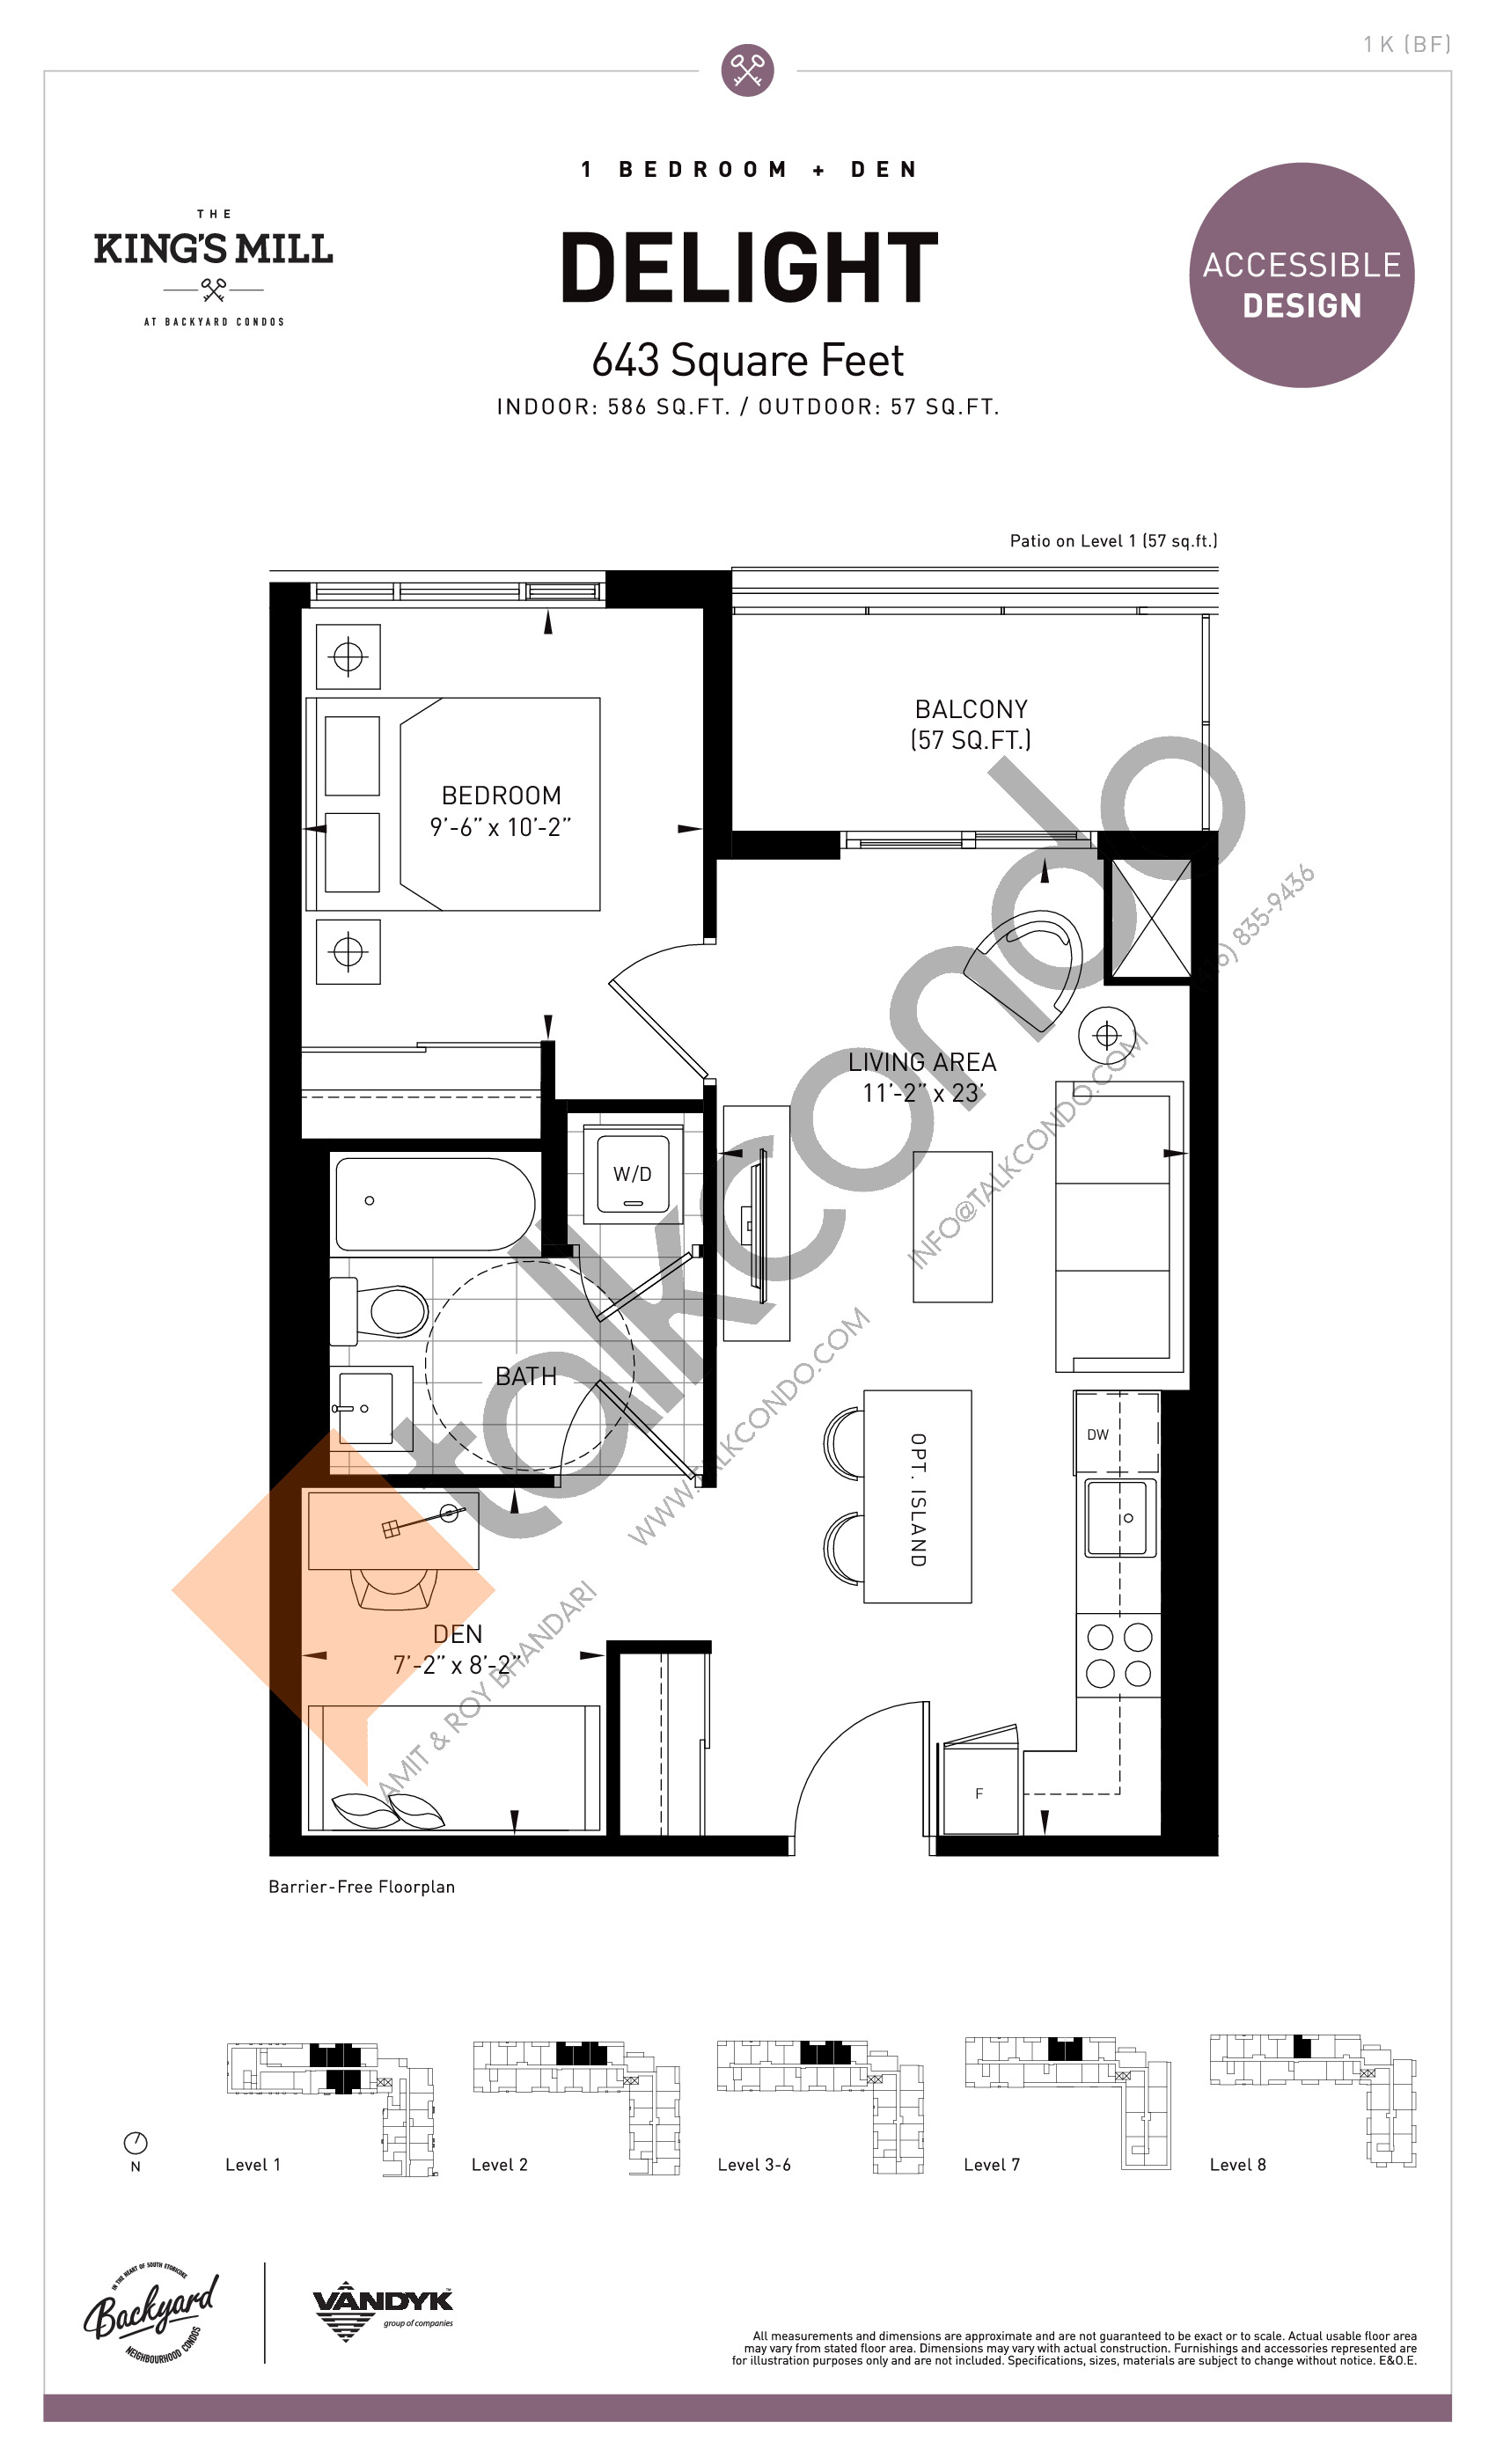 Delight Floor Plan at The King's Mill Condos - 586 sq.ft